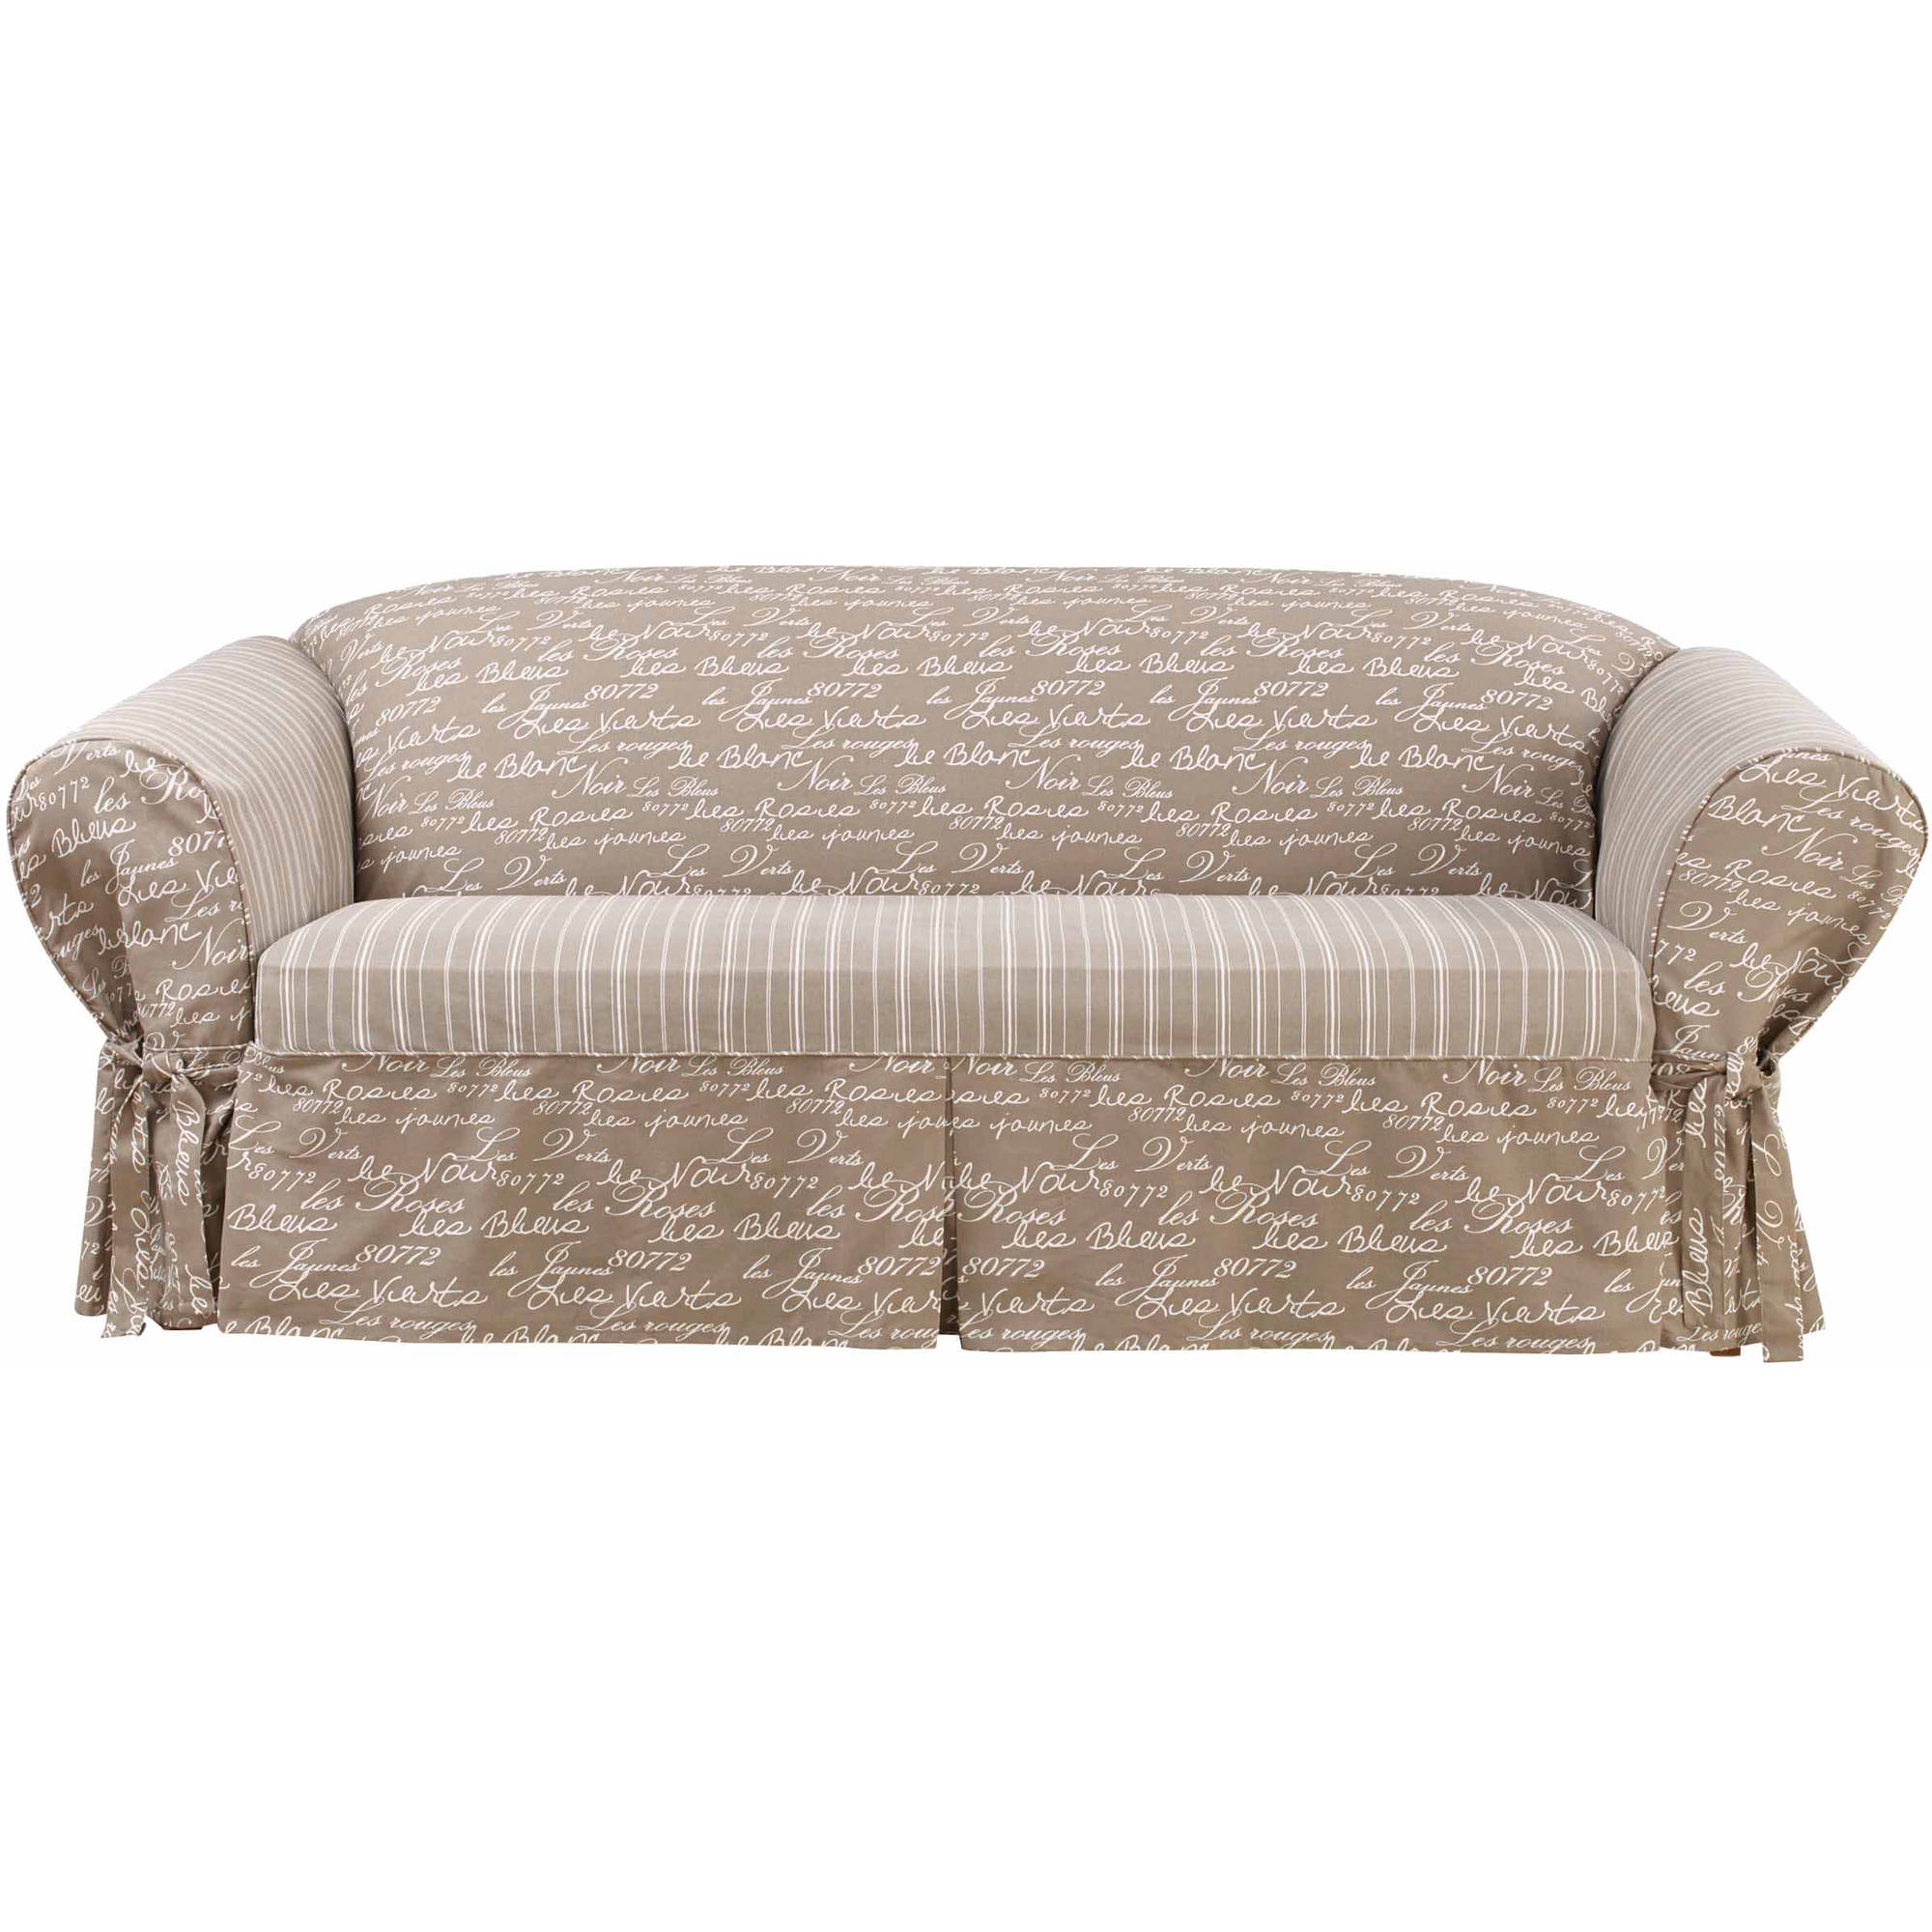 review sure slipcover sofa after life fit before slipcovers video pink without